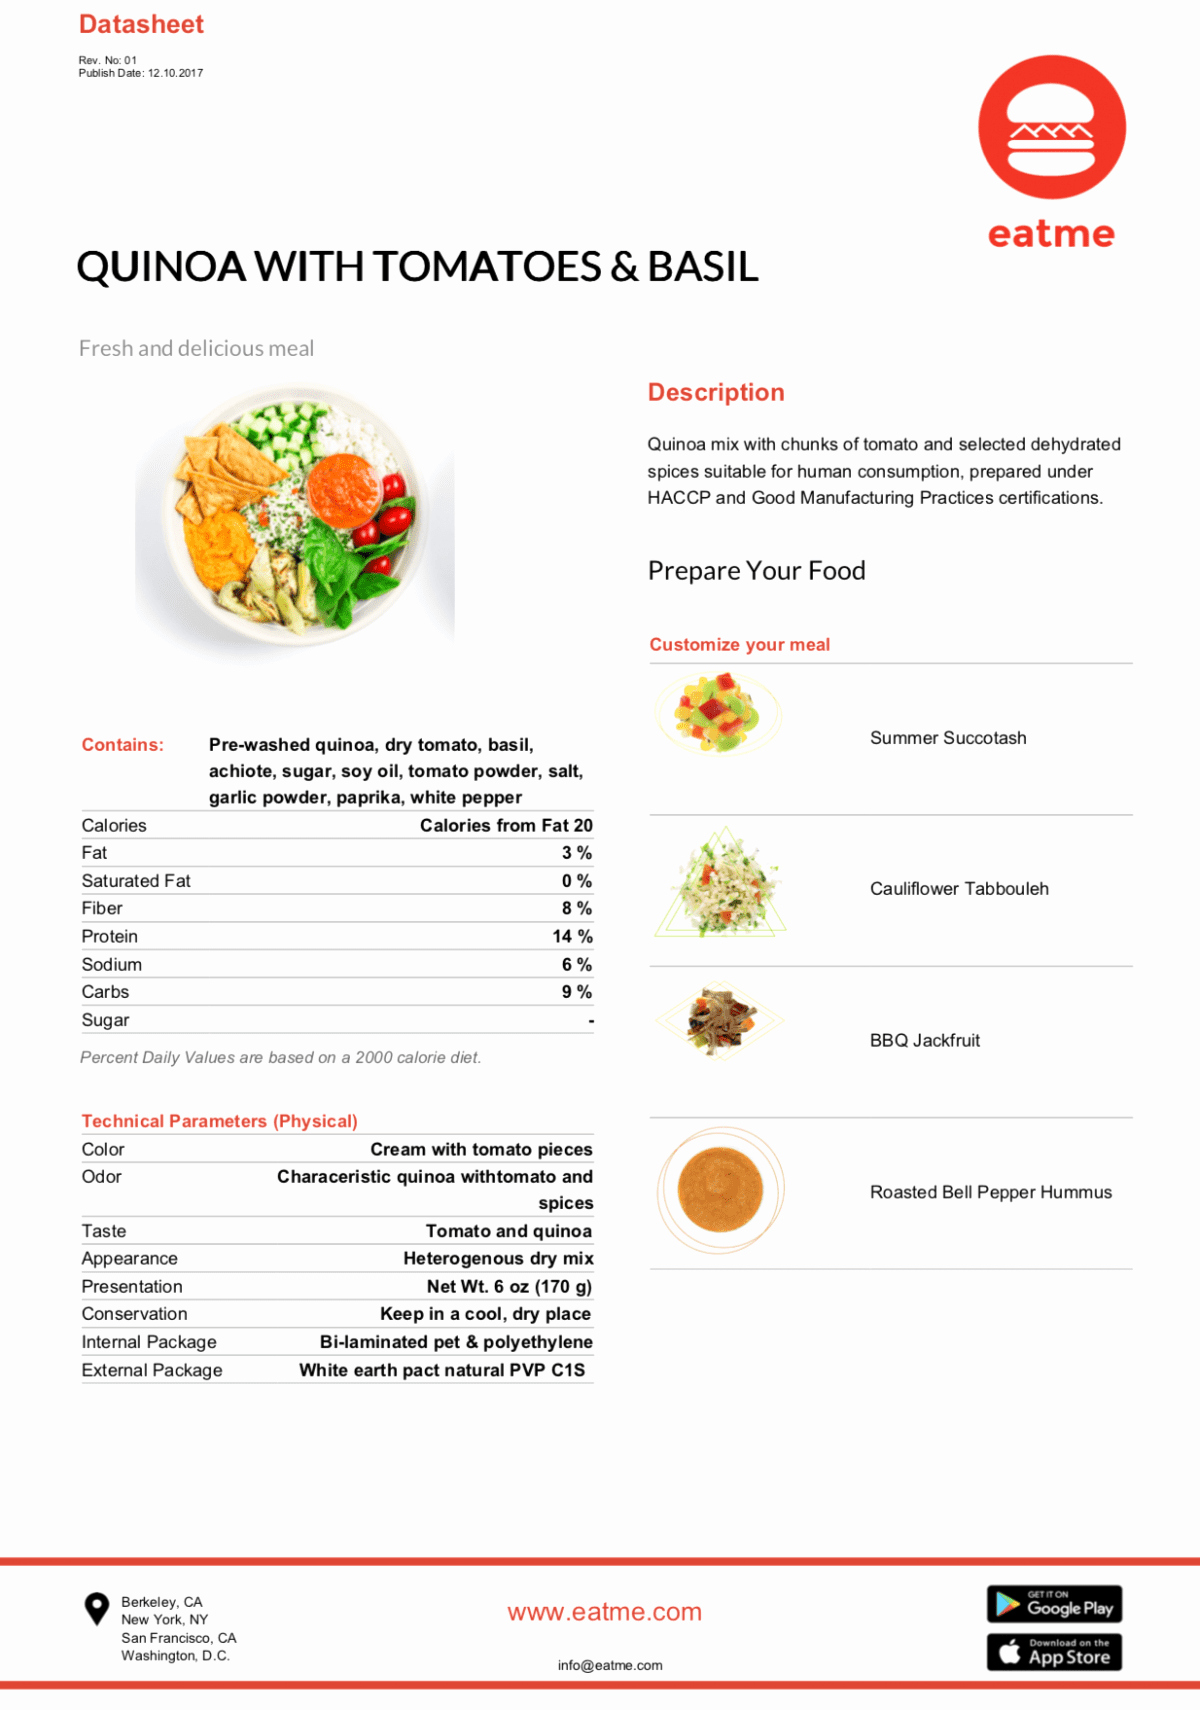 Food Product Spec Sheet Template Luxury Free Templates Data Sheet Spec Sheet and More